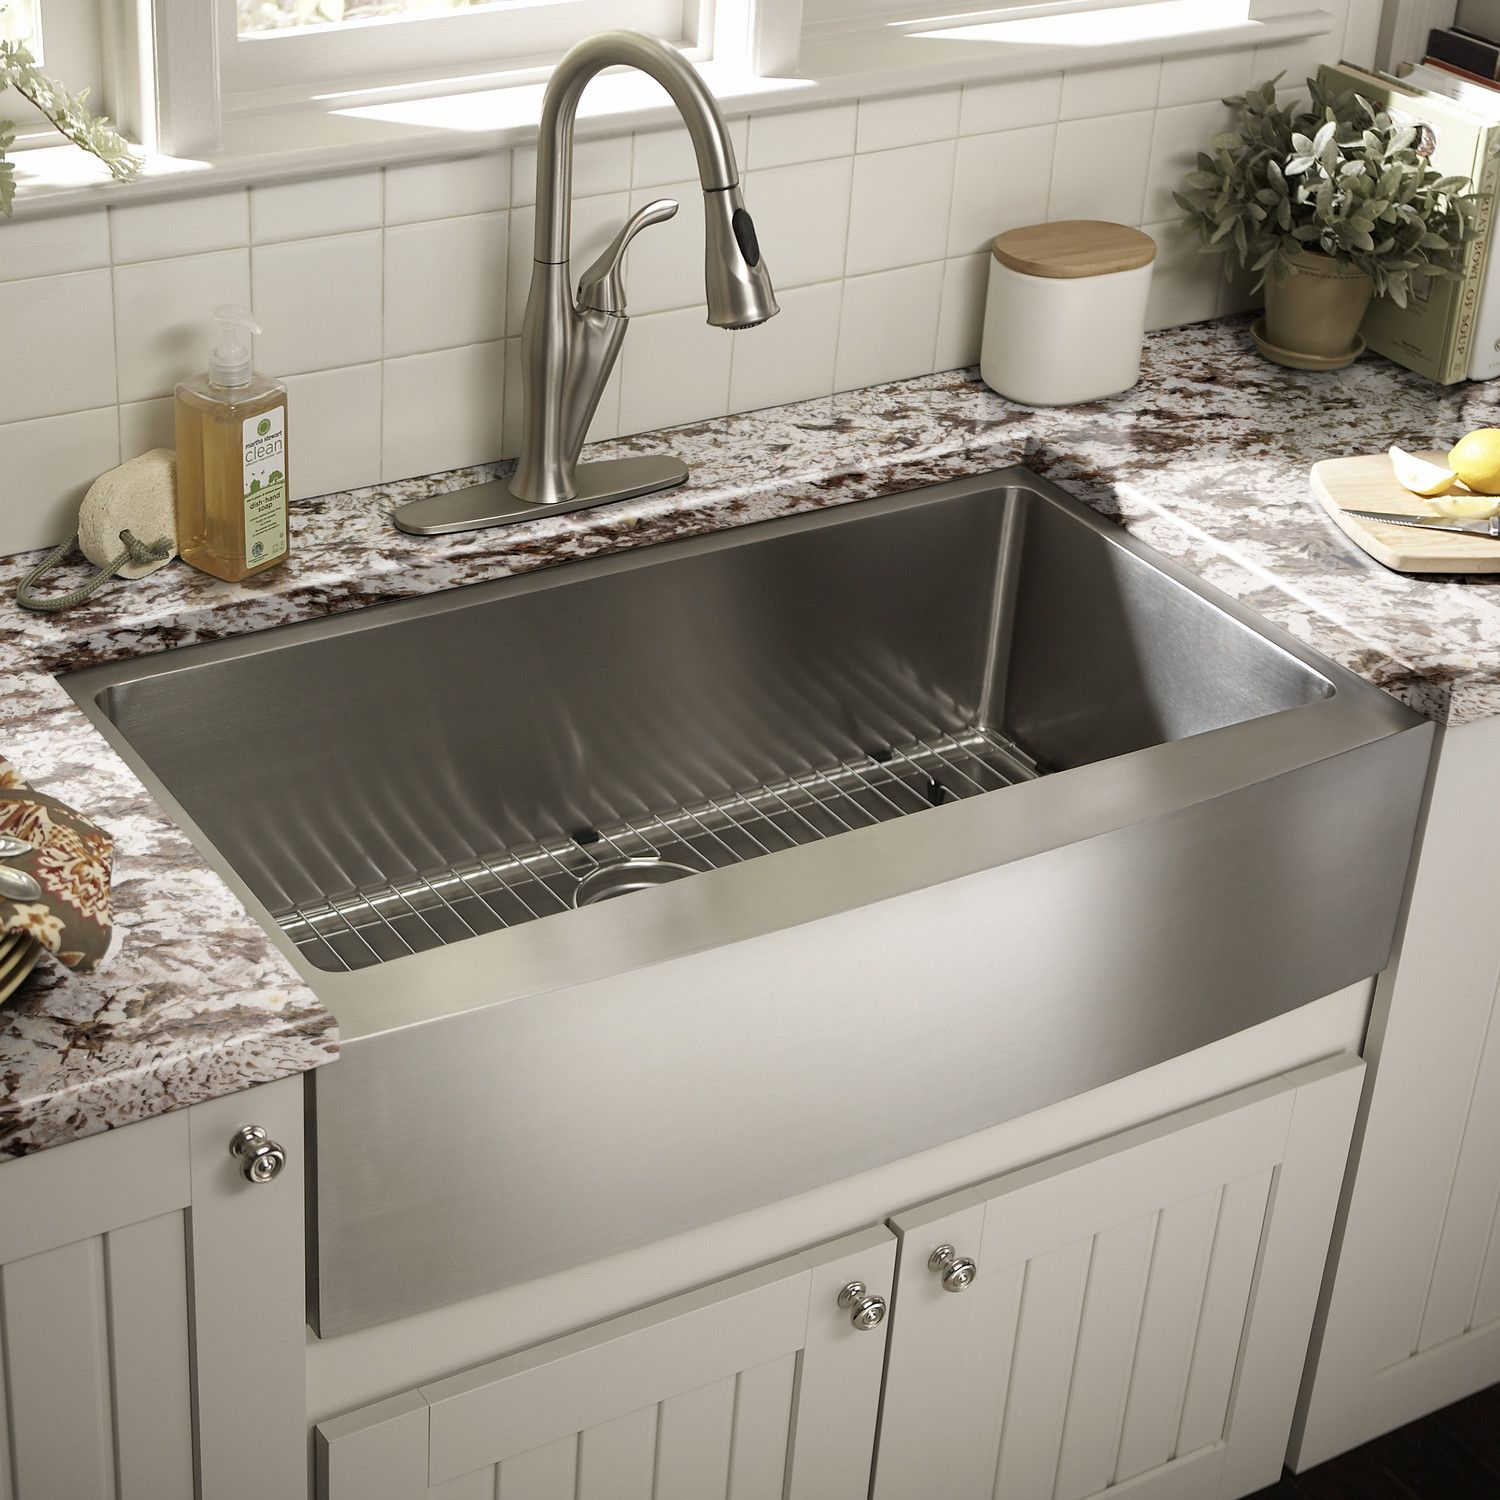 extra large kitchen sinks double bowl table with chairs schon 22 quot single farmhouse sink home design